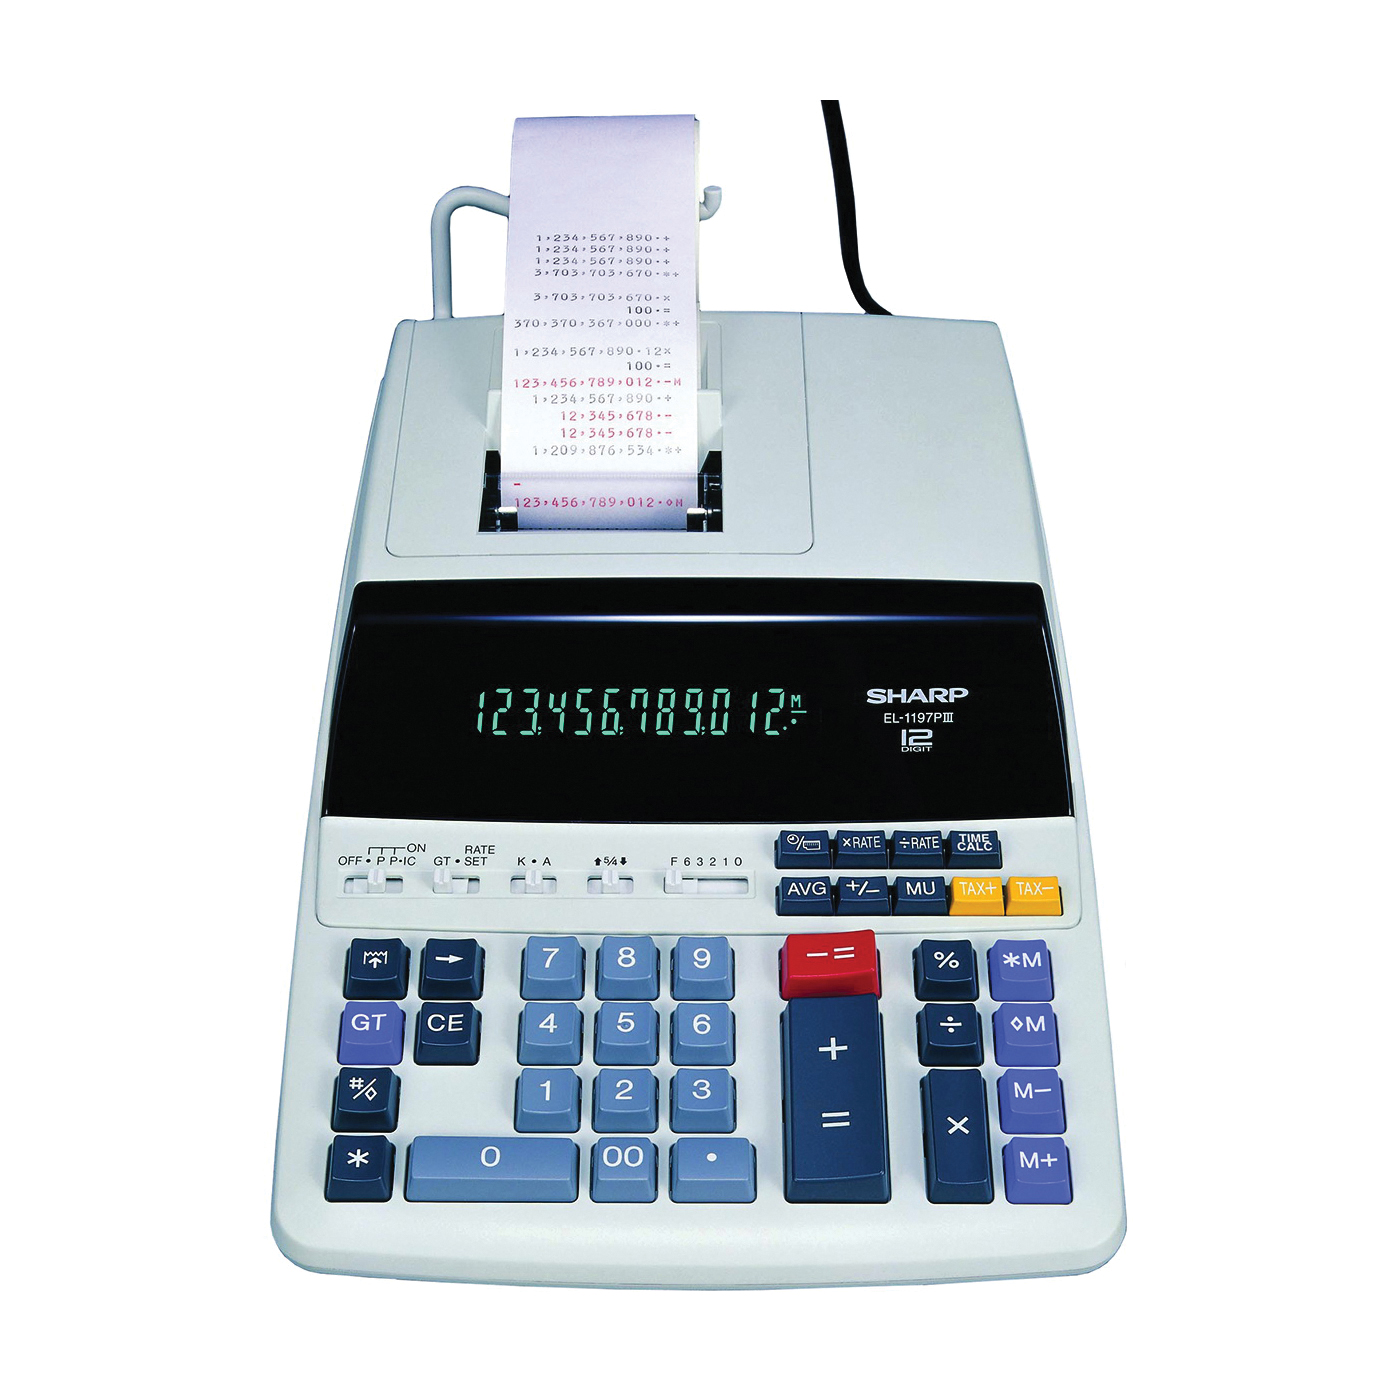 Picture of Sharp EL1197PIII Printing Calculator, 12 Display, Fluorescent Display, Off-White